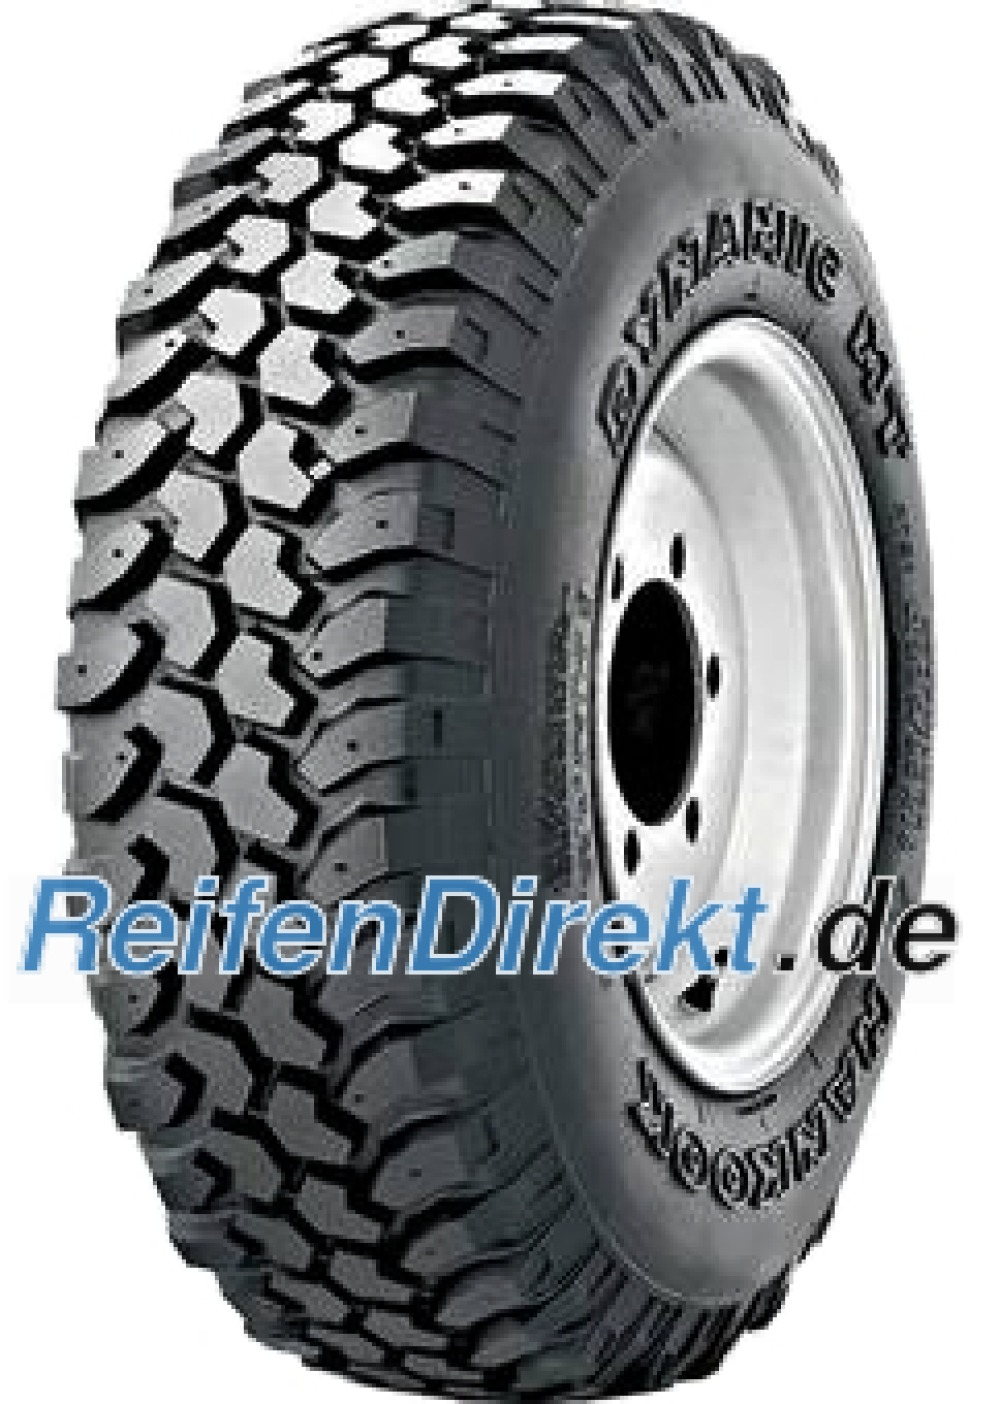 Hankook Dynamic RT 01